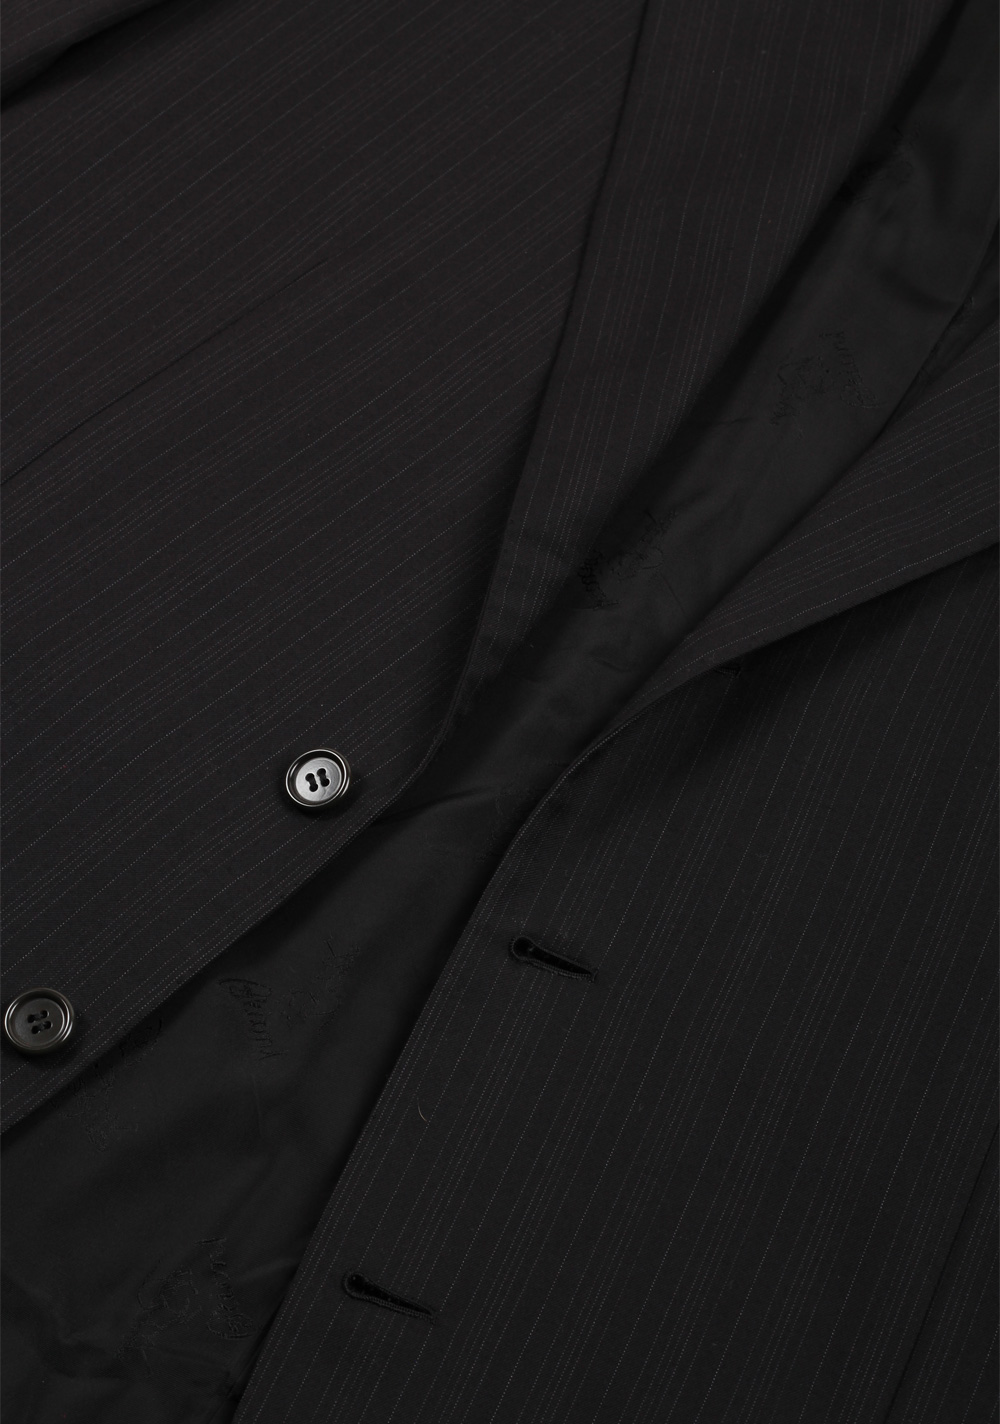 Brioni Colosseo Charcoal Suit Size 50 / 40R U.S. In Wool Super 200s | Costume Limité